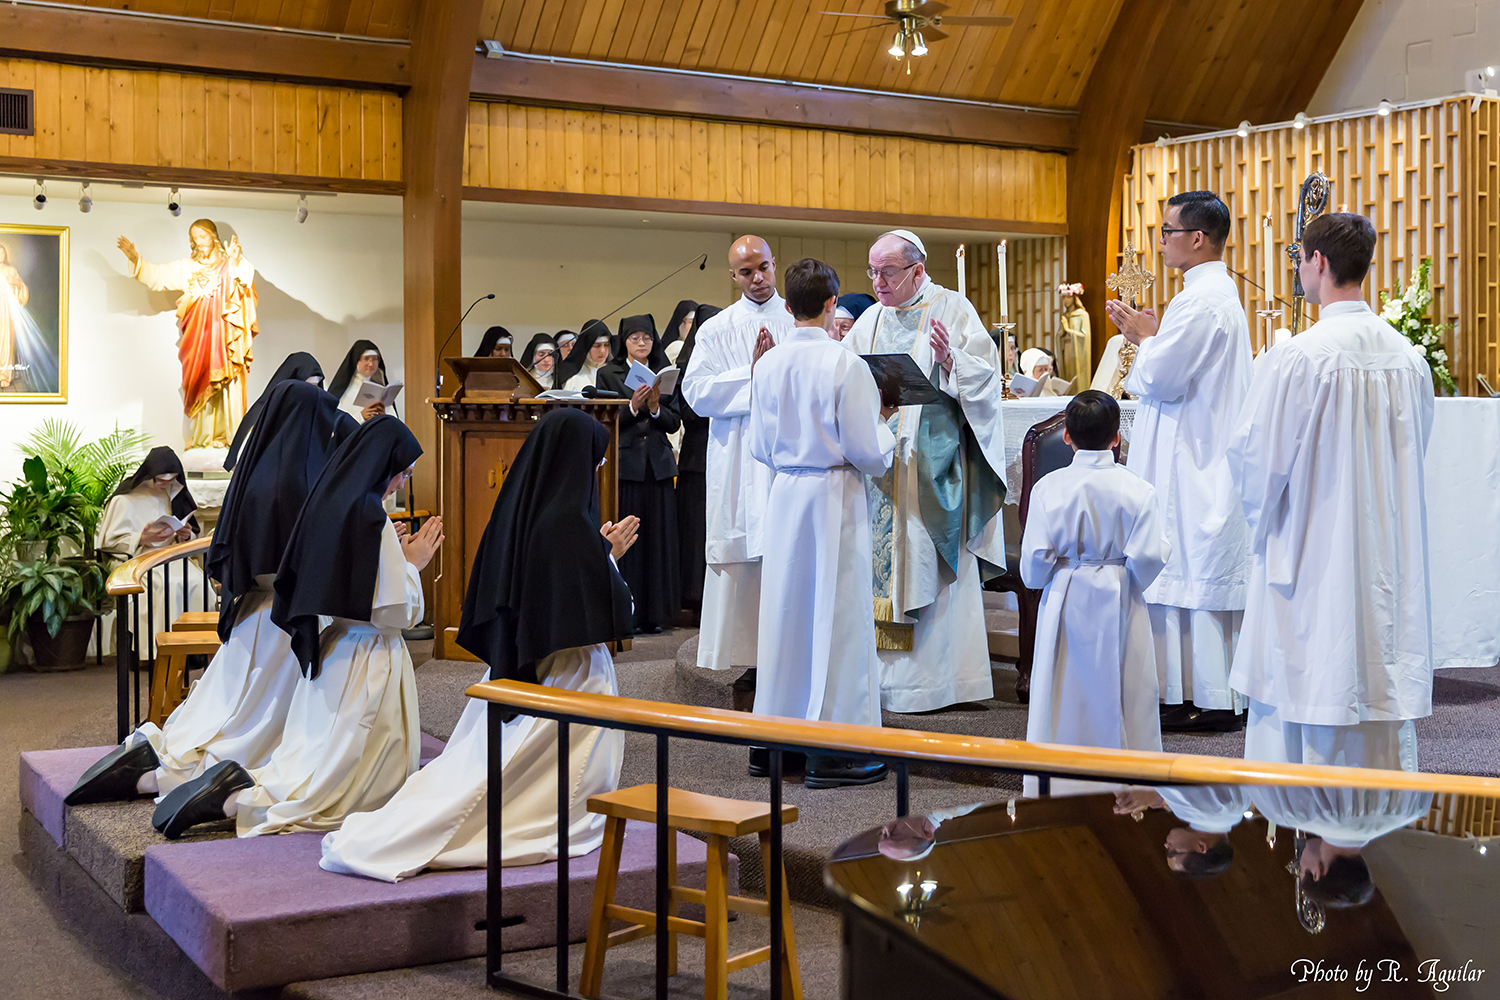 30 Consecration of the Professed